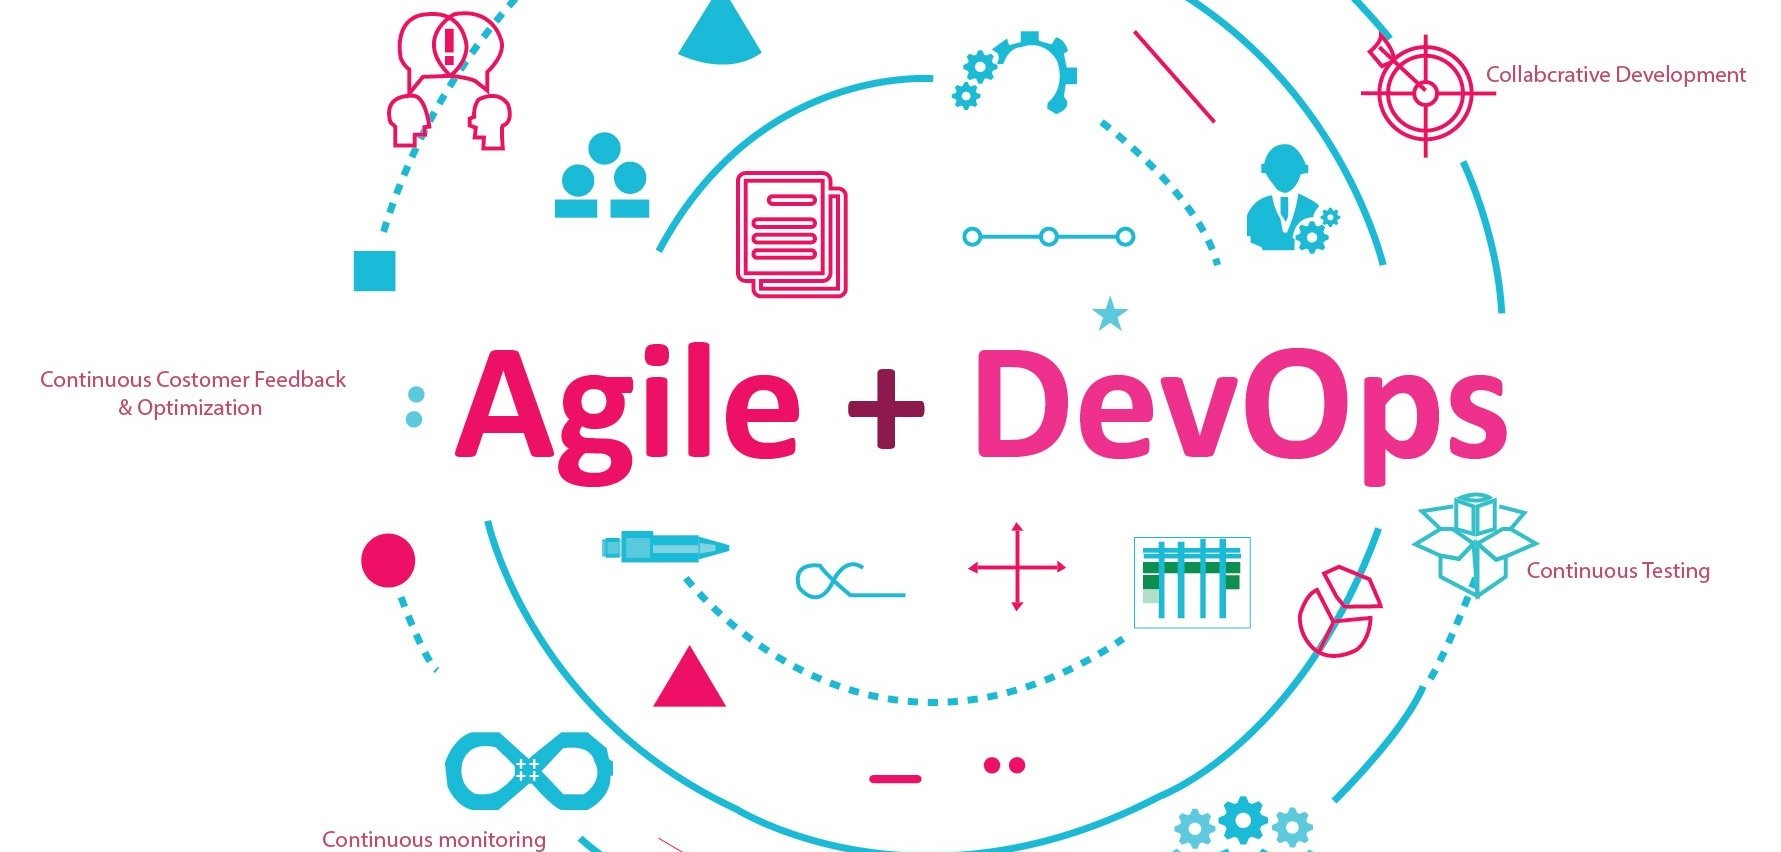 The journey from Agile to DevOps